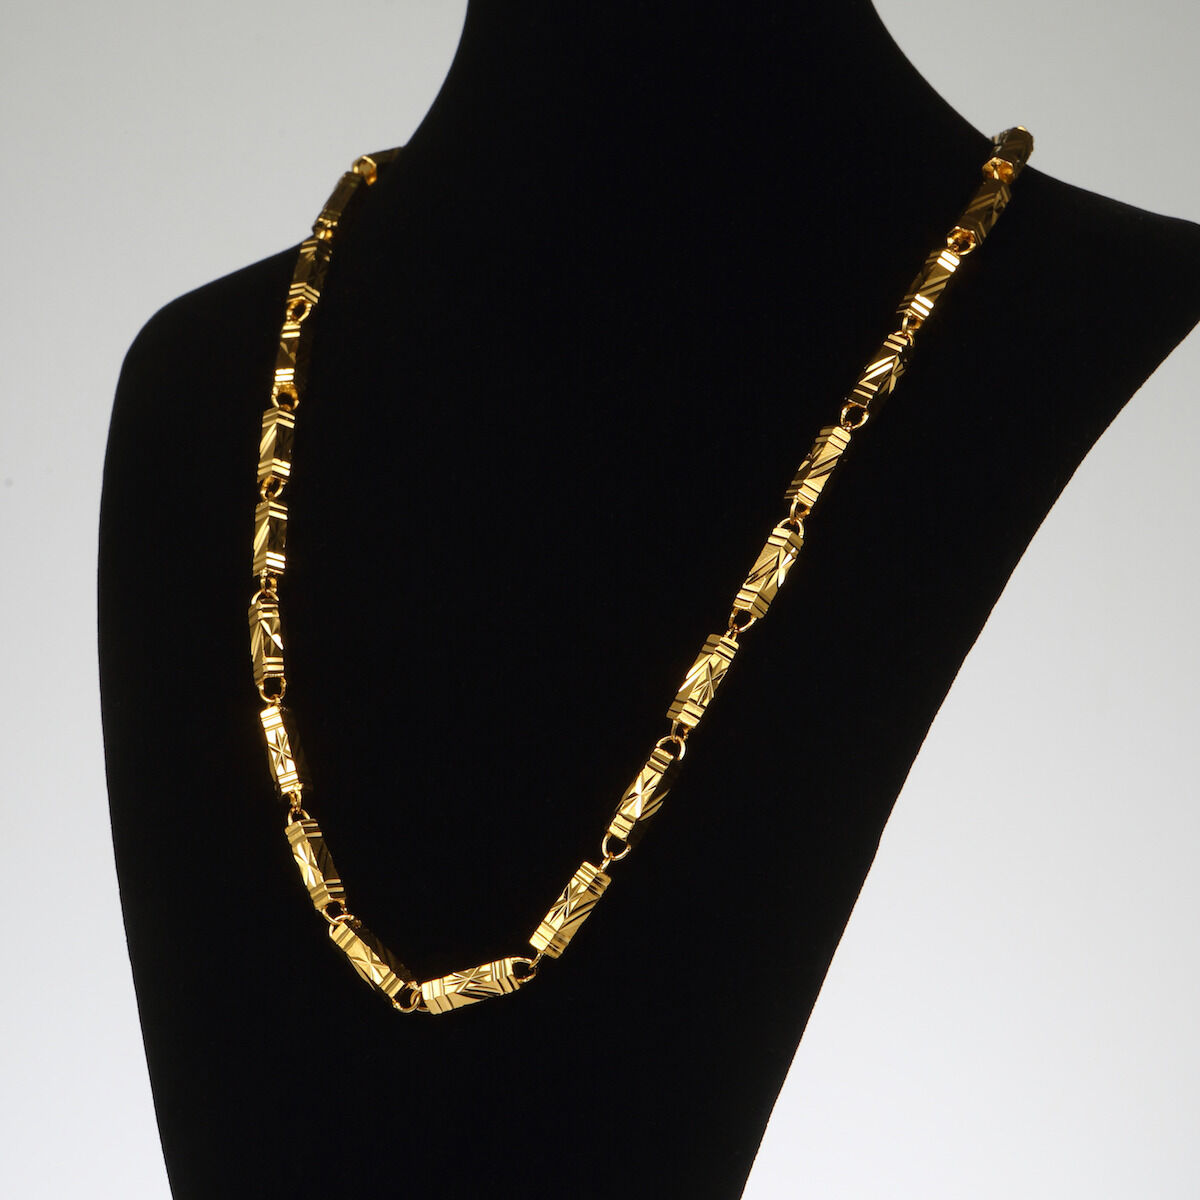 Xxl Solid Gold Necklace Mens Chain 24k Yellow Gold Filled